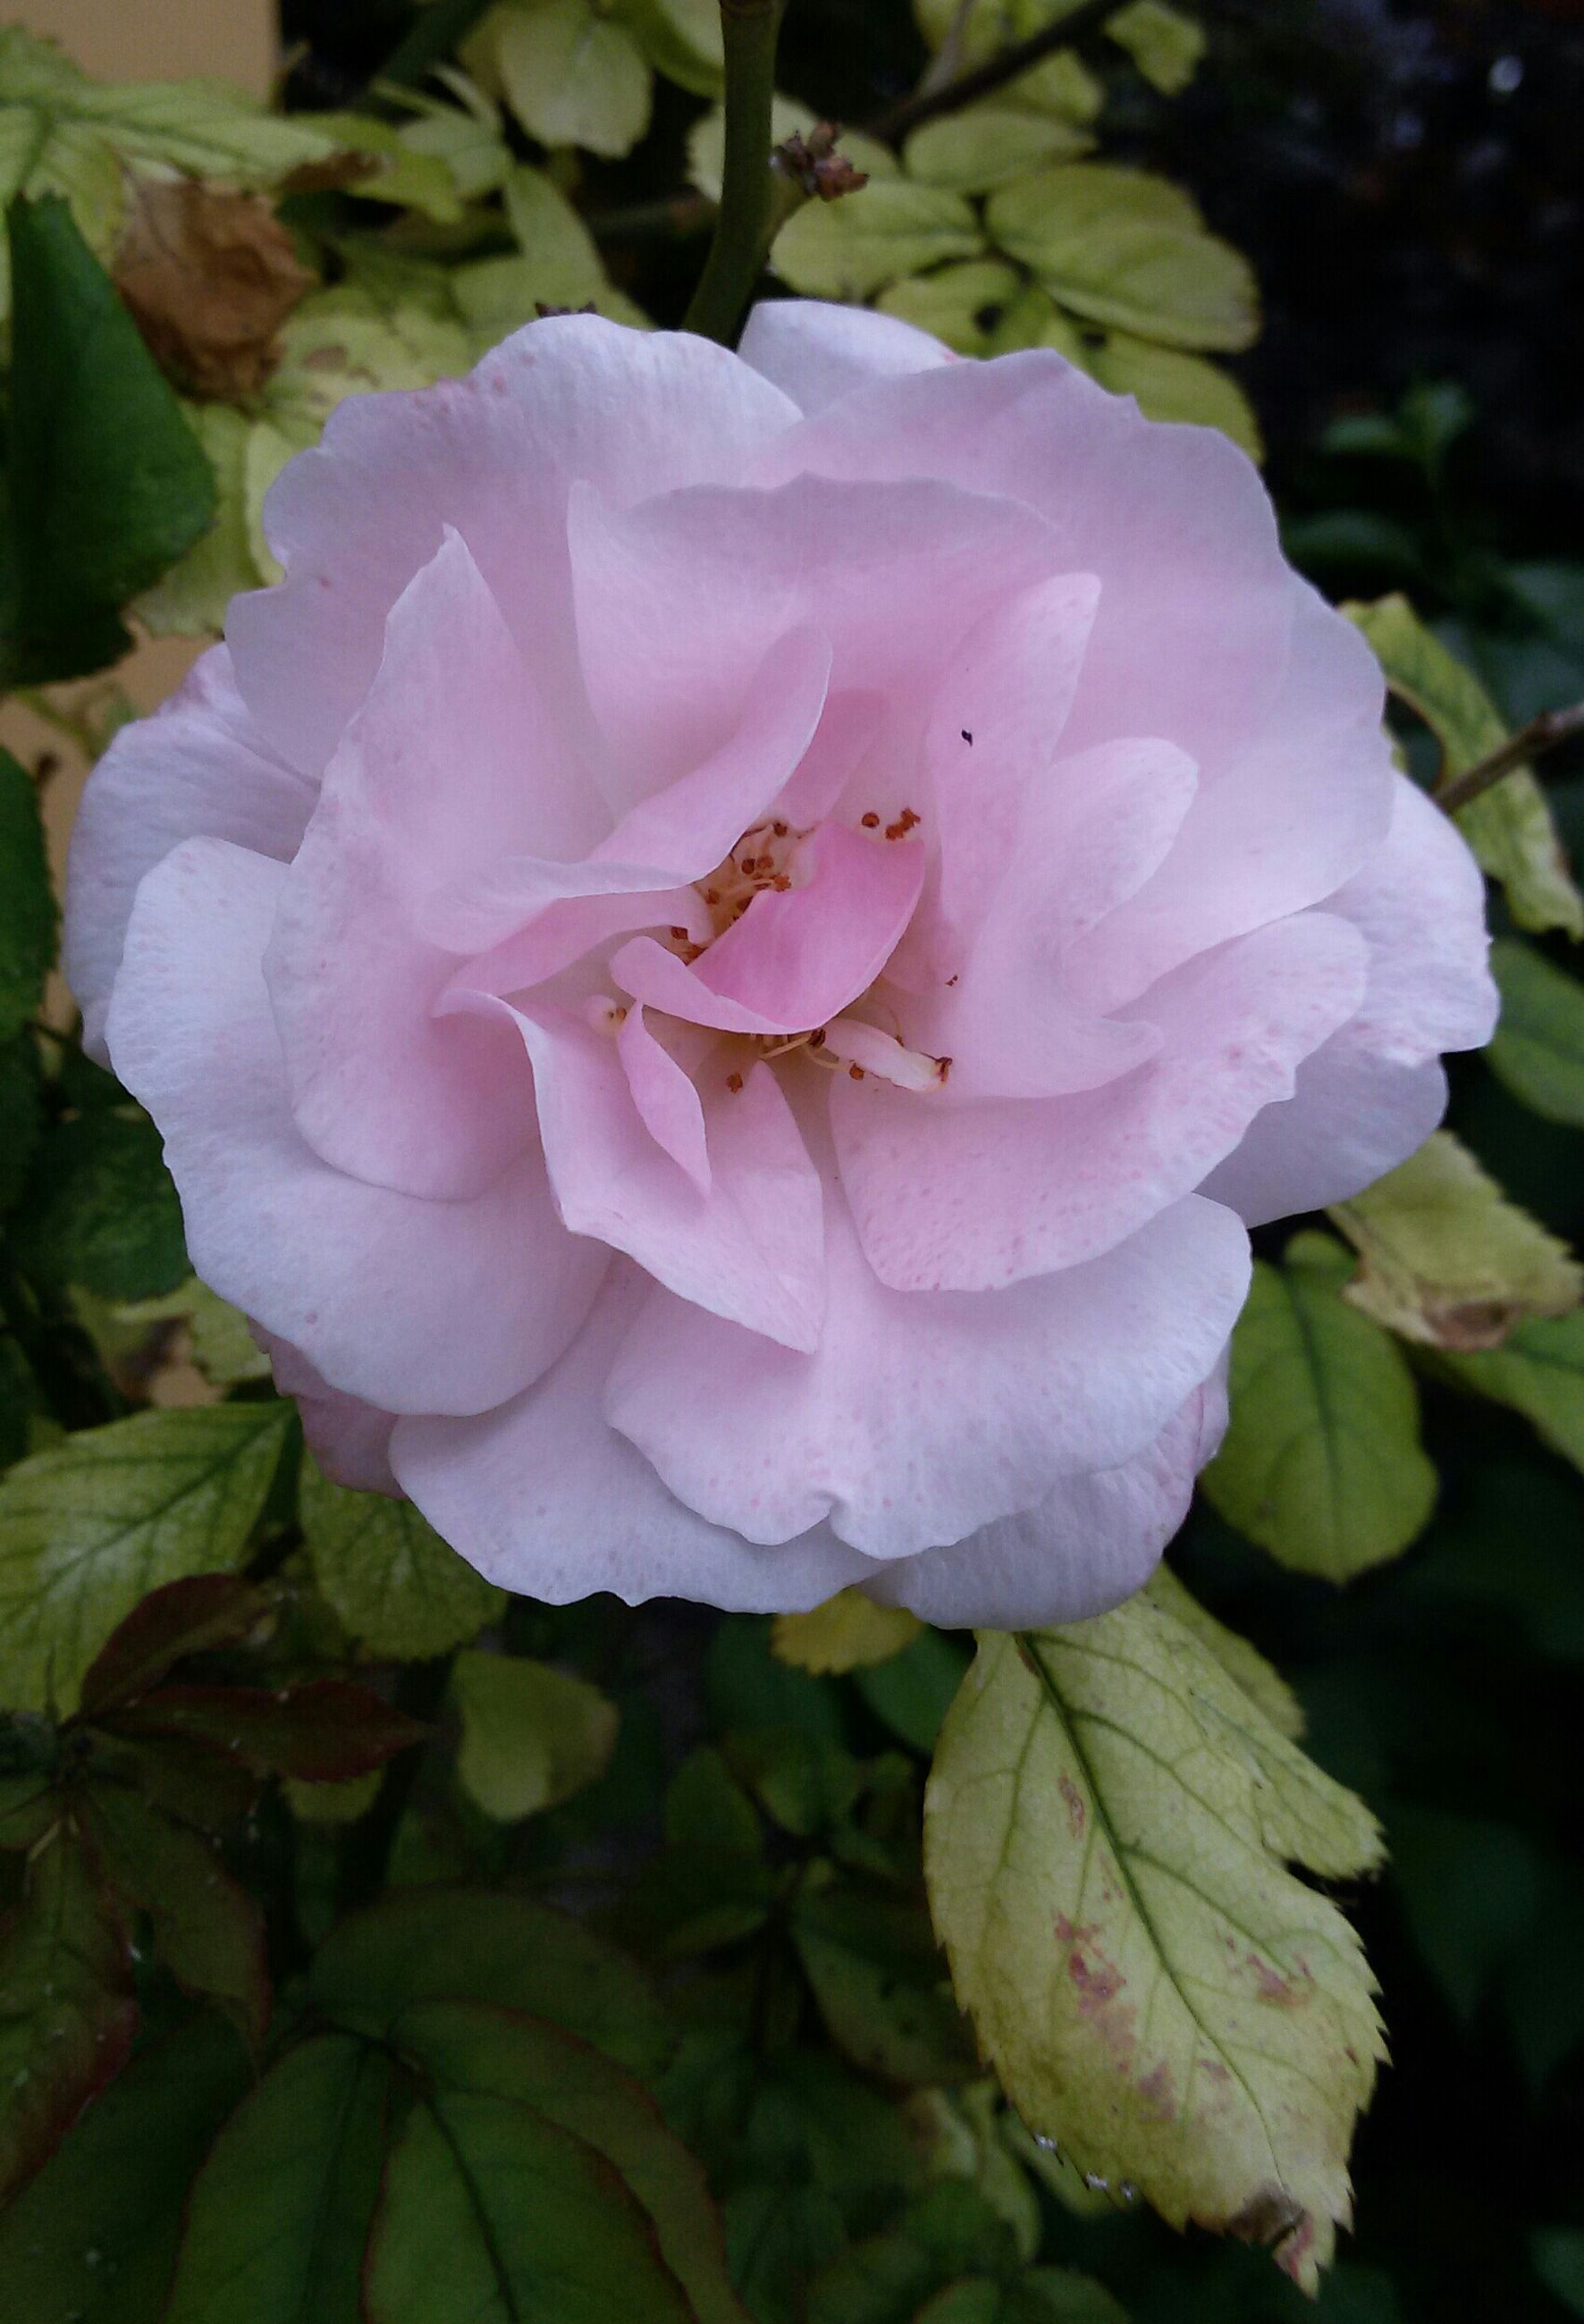 flower, petal, freshness, flower head, fragility, growth, beauty in nature, close-up, single flower, pink color, blooming, nature, leaf, plant, rose - flower, focus on foreground, in bloom, park - man made space, blossom, outdoors